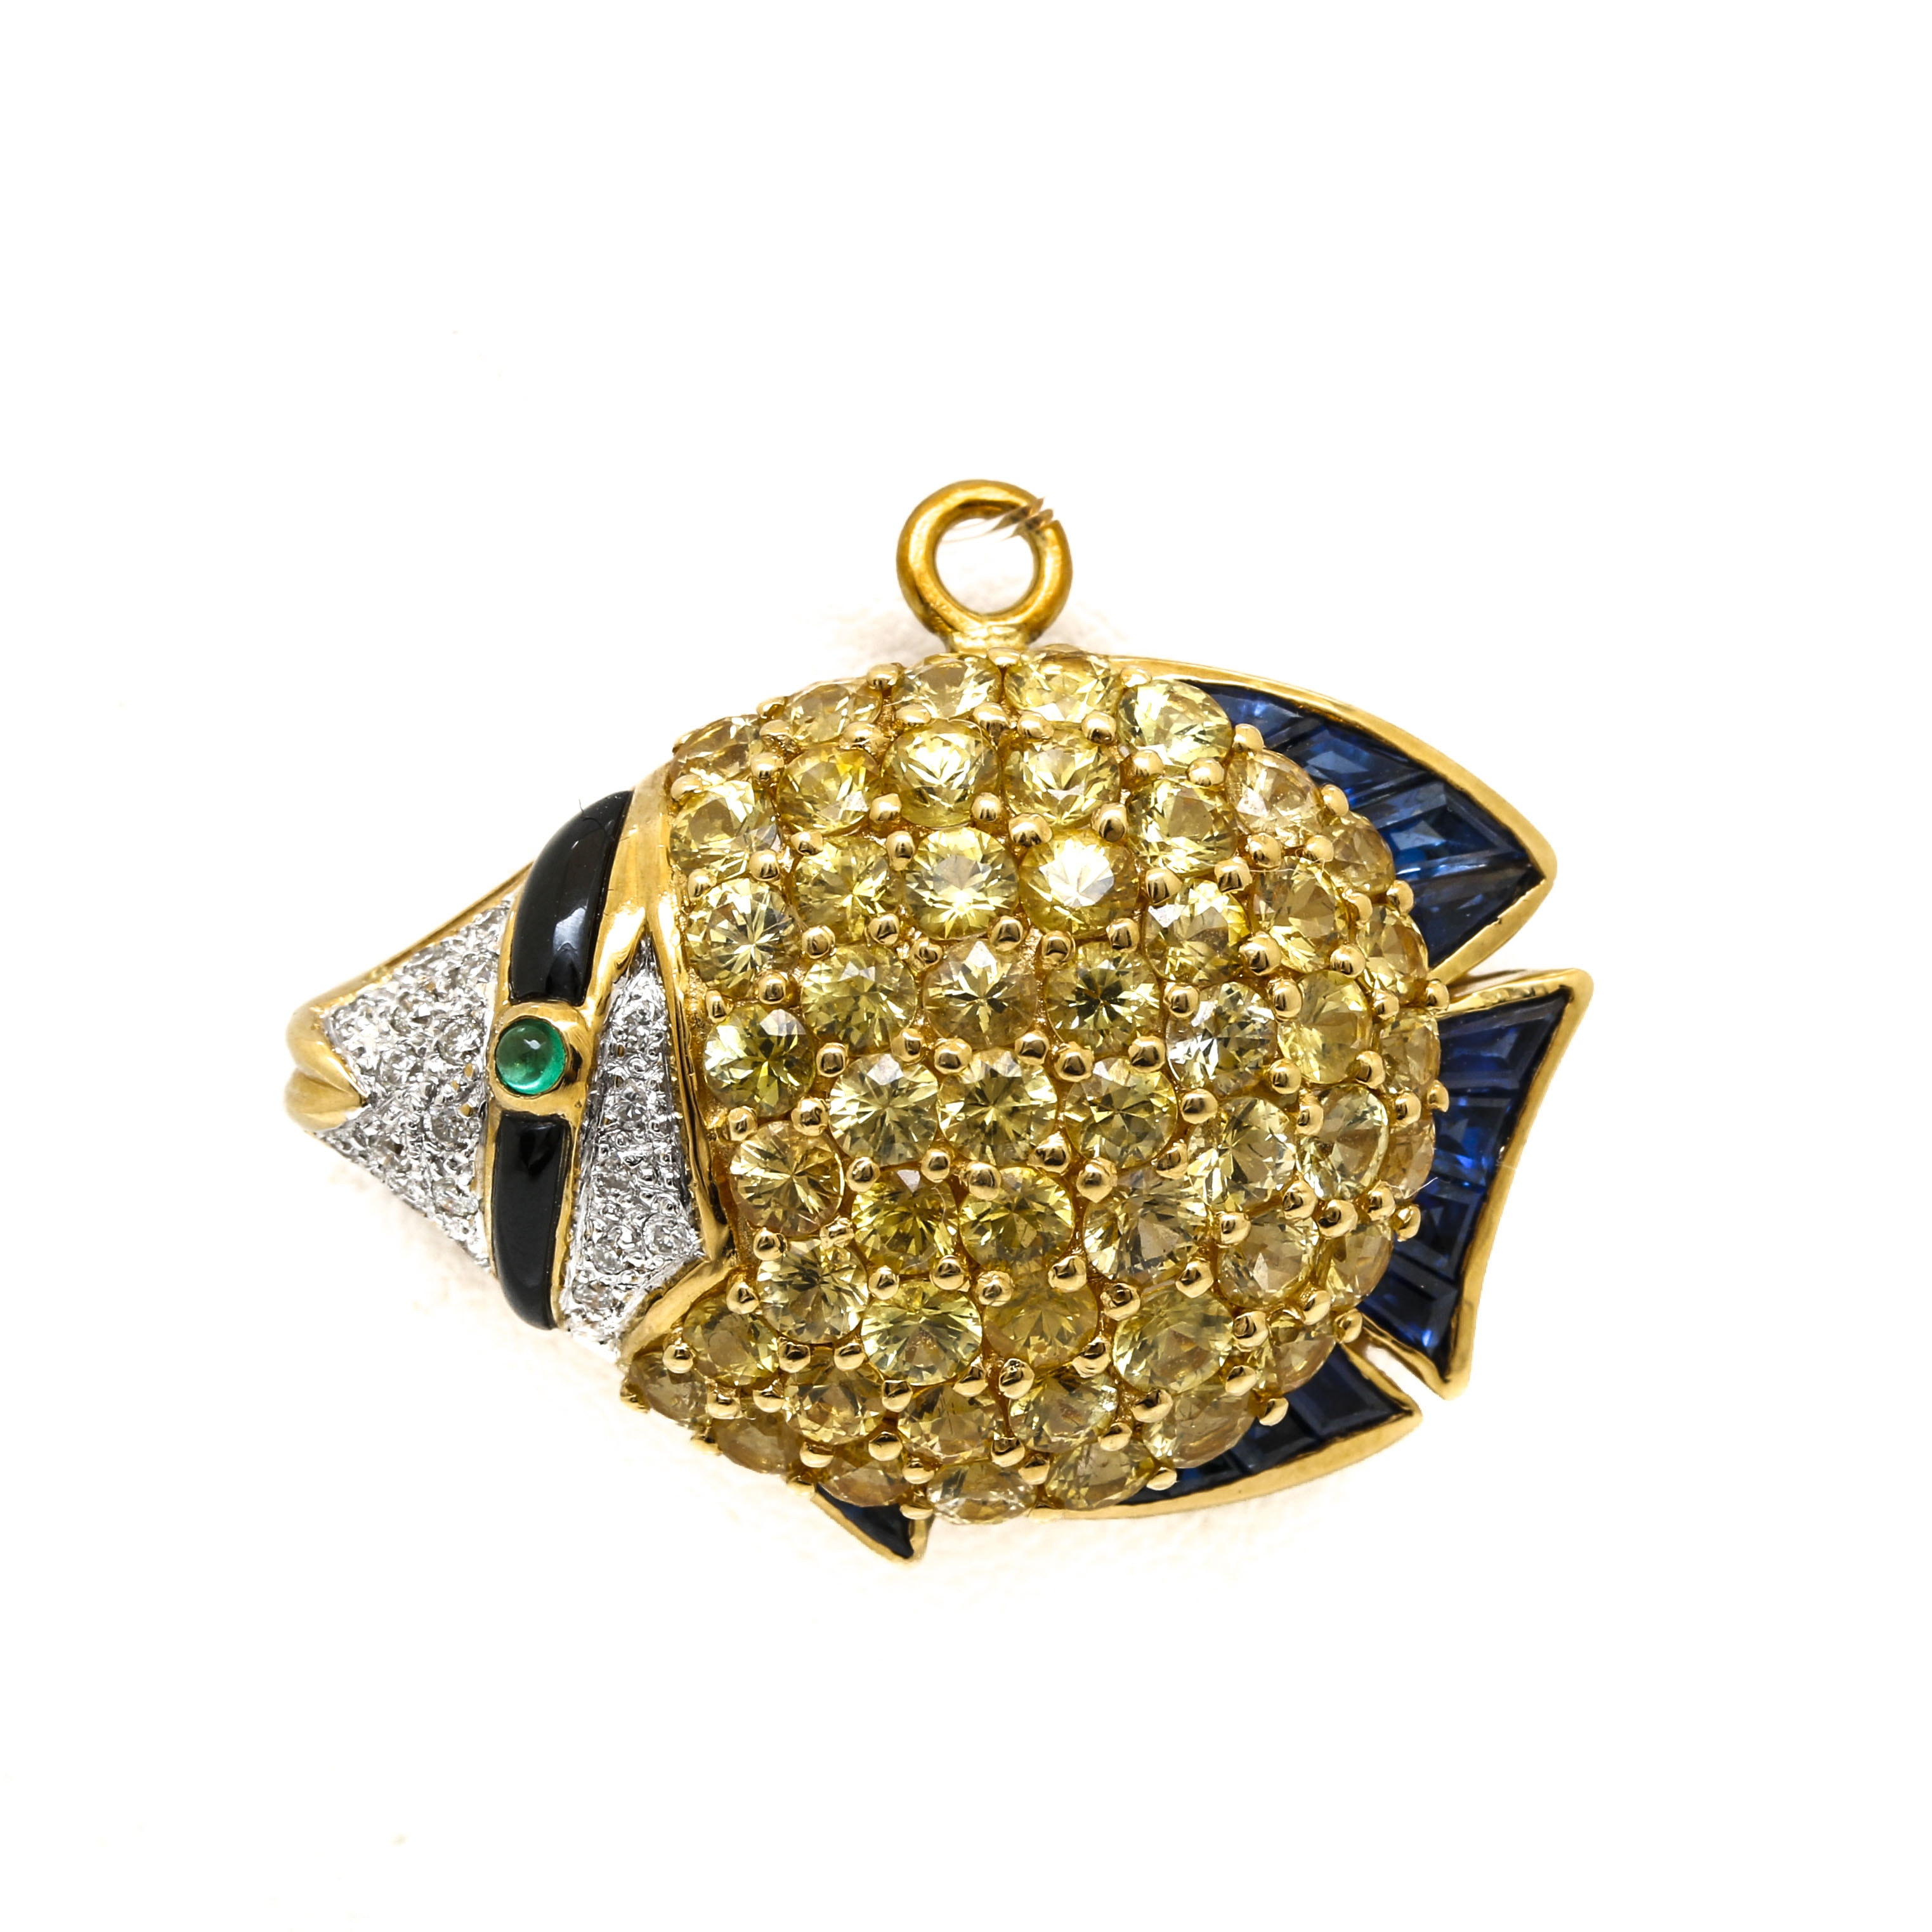 Le Vian 18K Yellow Gold Diamond and Gemstone Fish Pendant Brooch